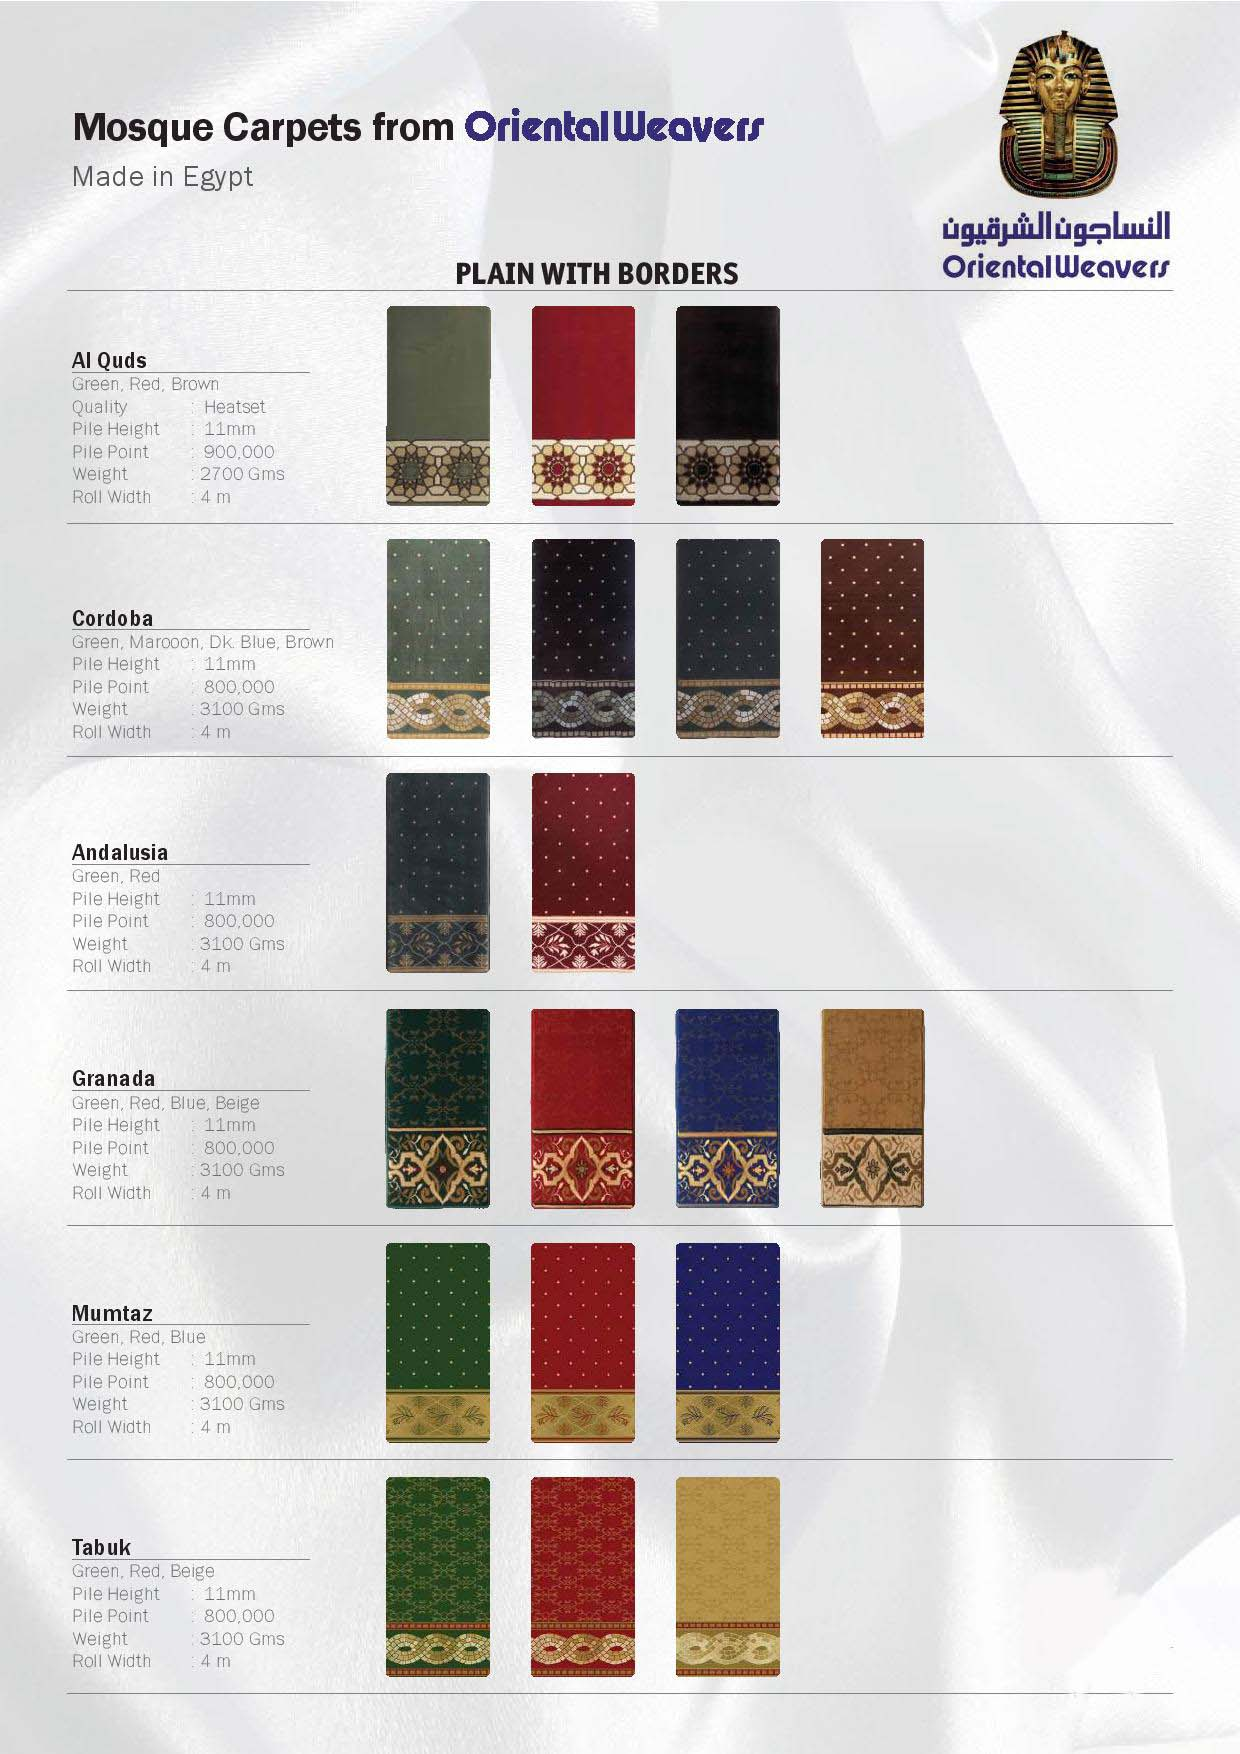 92468262Mosque Carpets-page-003 copy